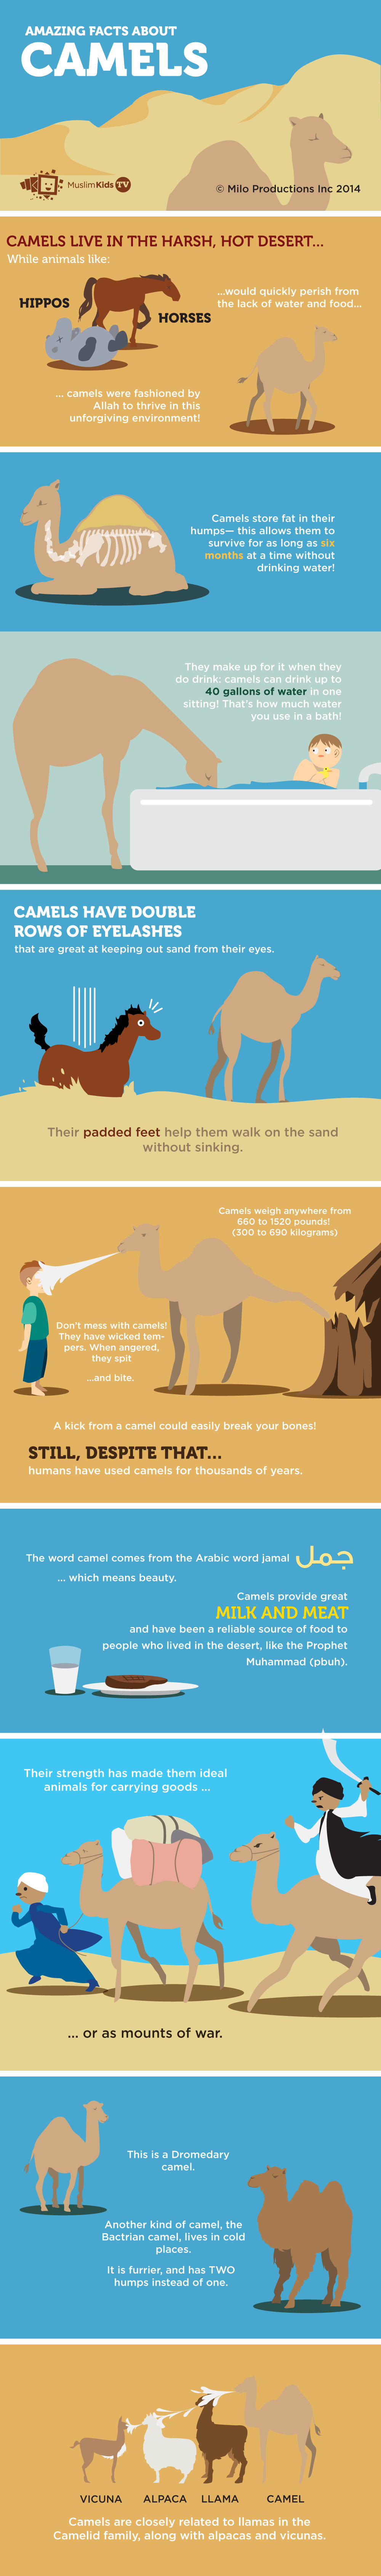 camel-info.png